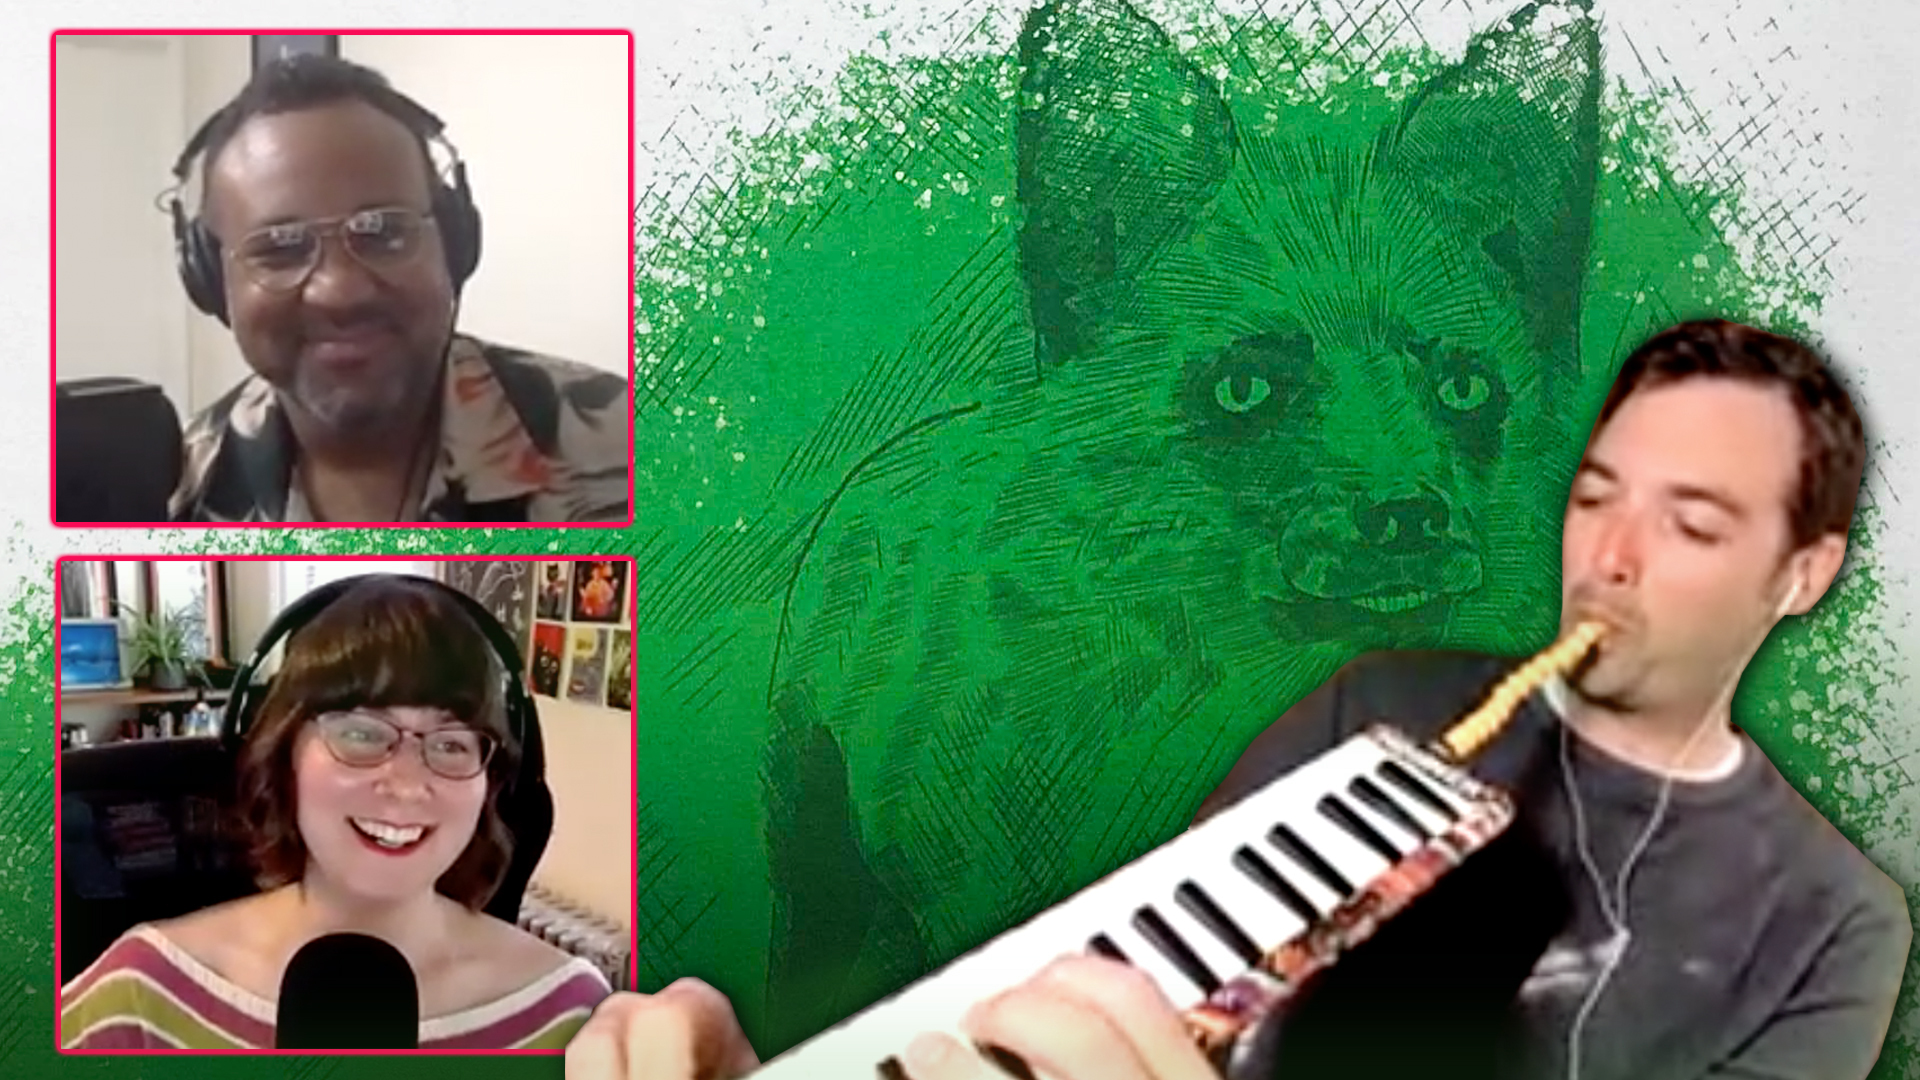 A collage with two people in front of microphones on the left and another person on the right enthusiastically playing a melodica, all over a background of a fox drawn in green colors.